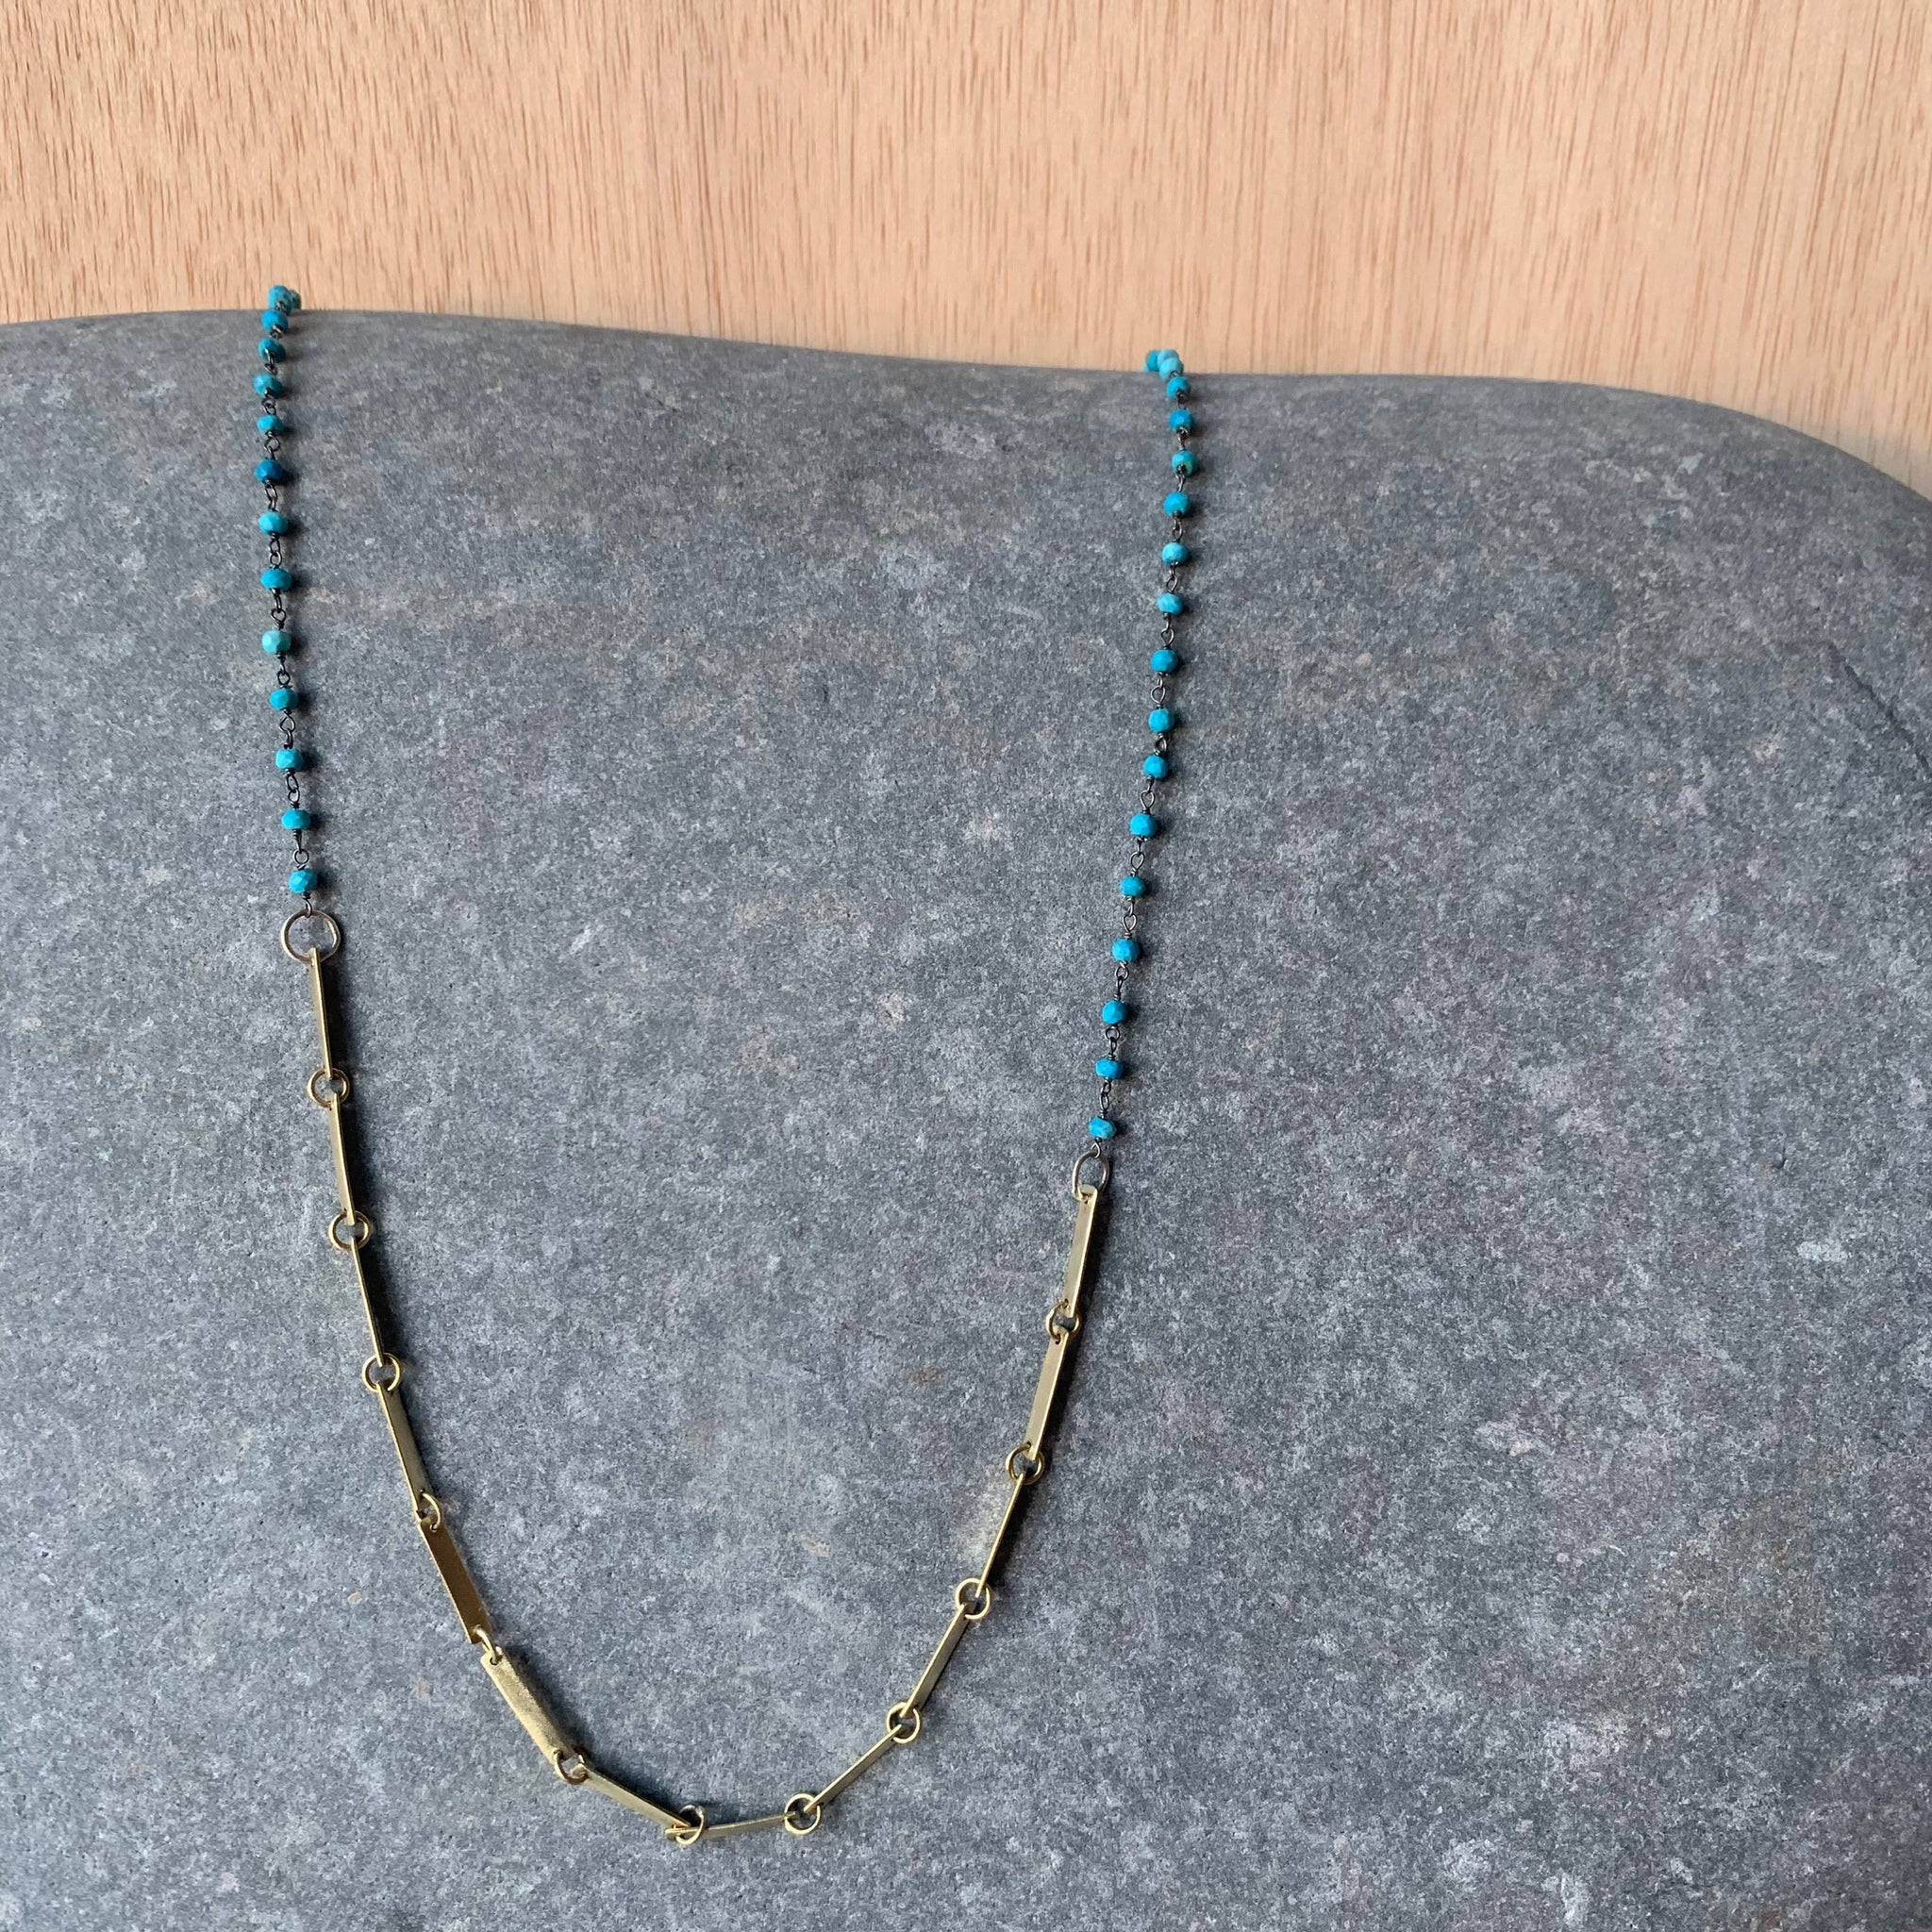 Handmade Brass Bar Necklace with Turquoise by Eric Silva